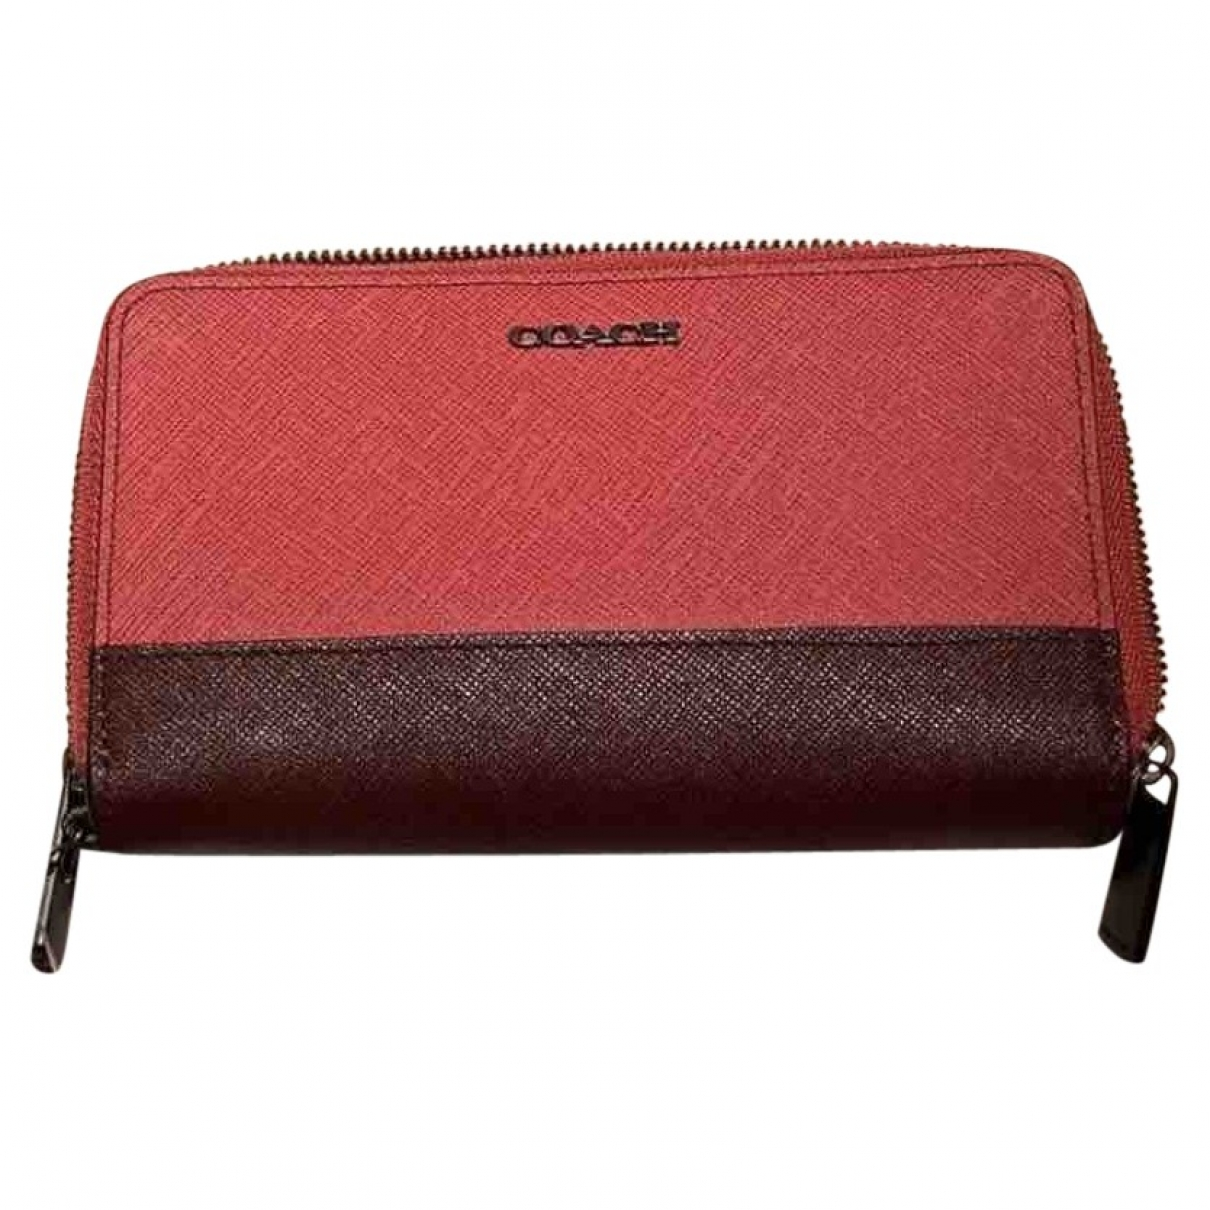 Coach \N Pink Leather wallet for Women \N